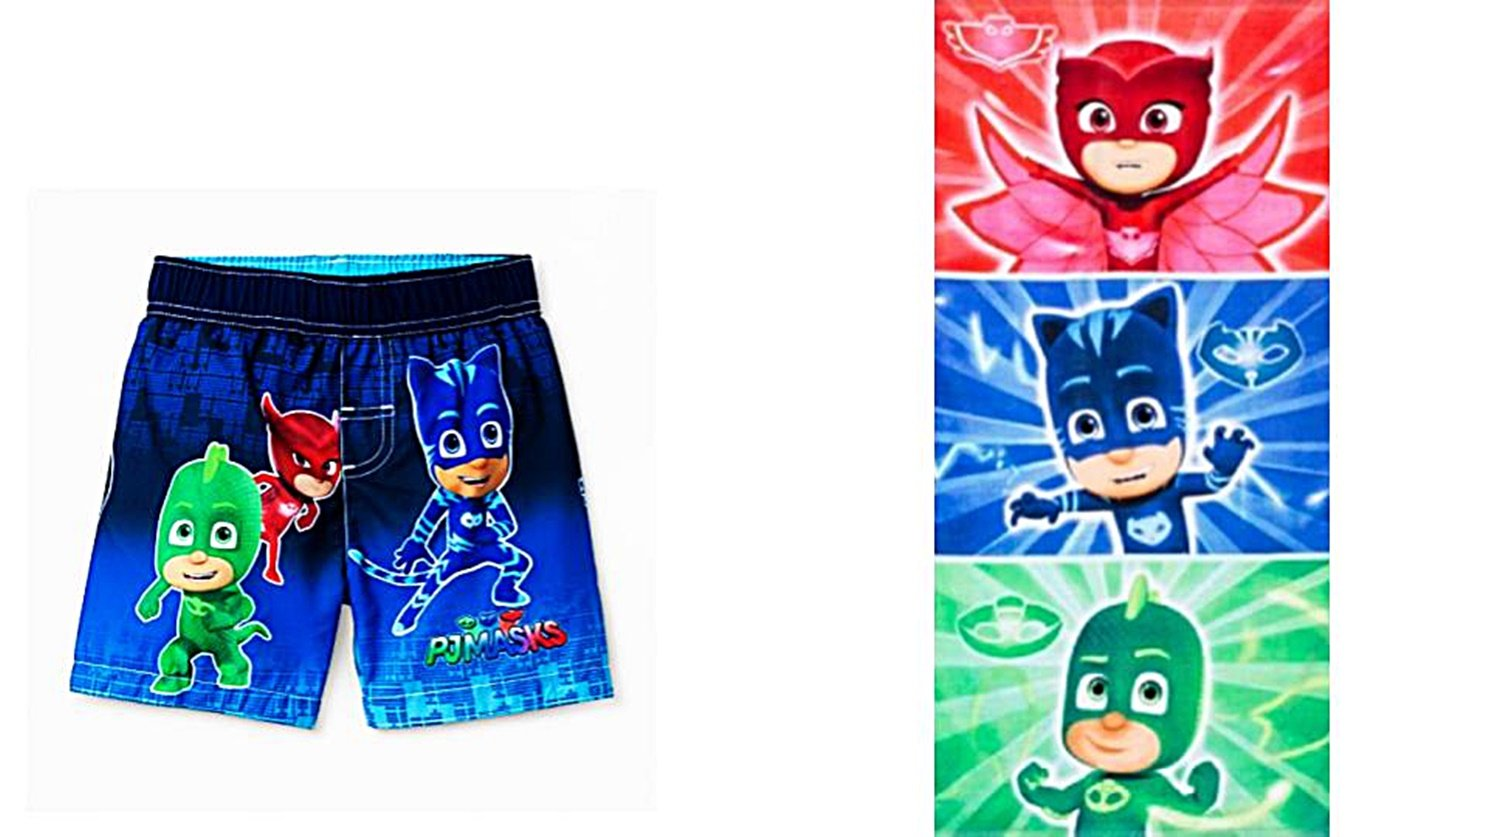 Custom Bundled Products Disney Junior PJMASKS Toddler Boys UFP50+ Swim Trunks Plus Character Beach Towel (4T)